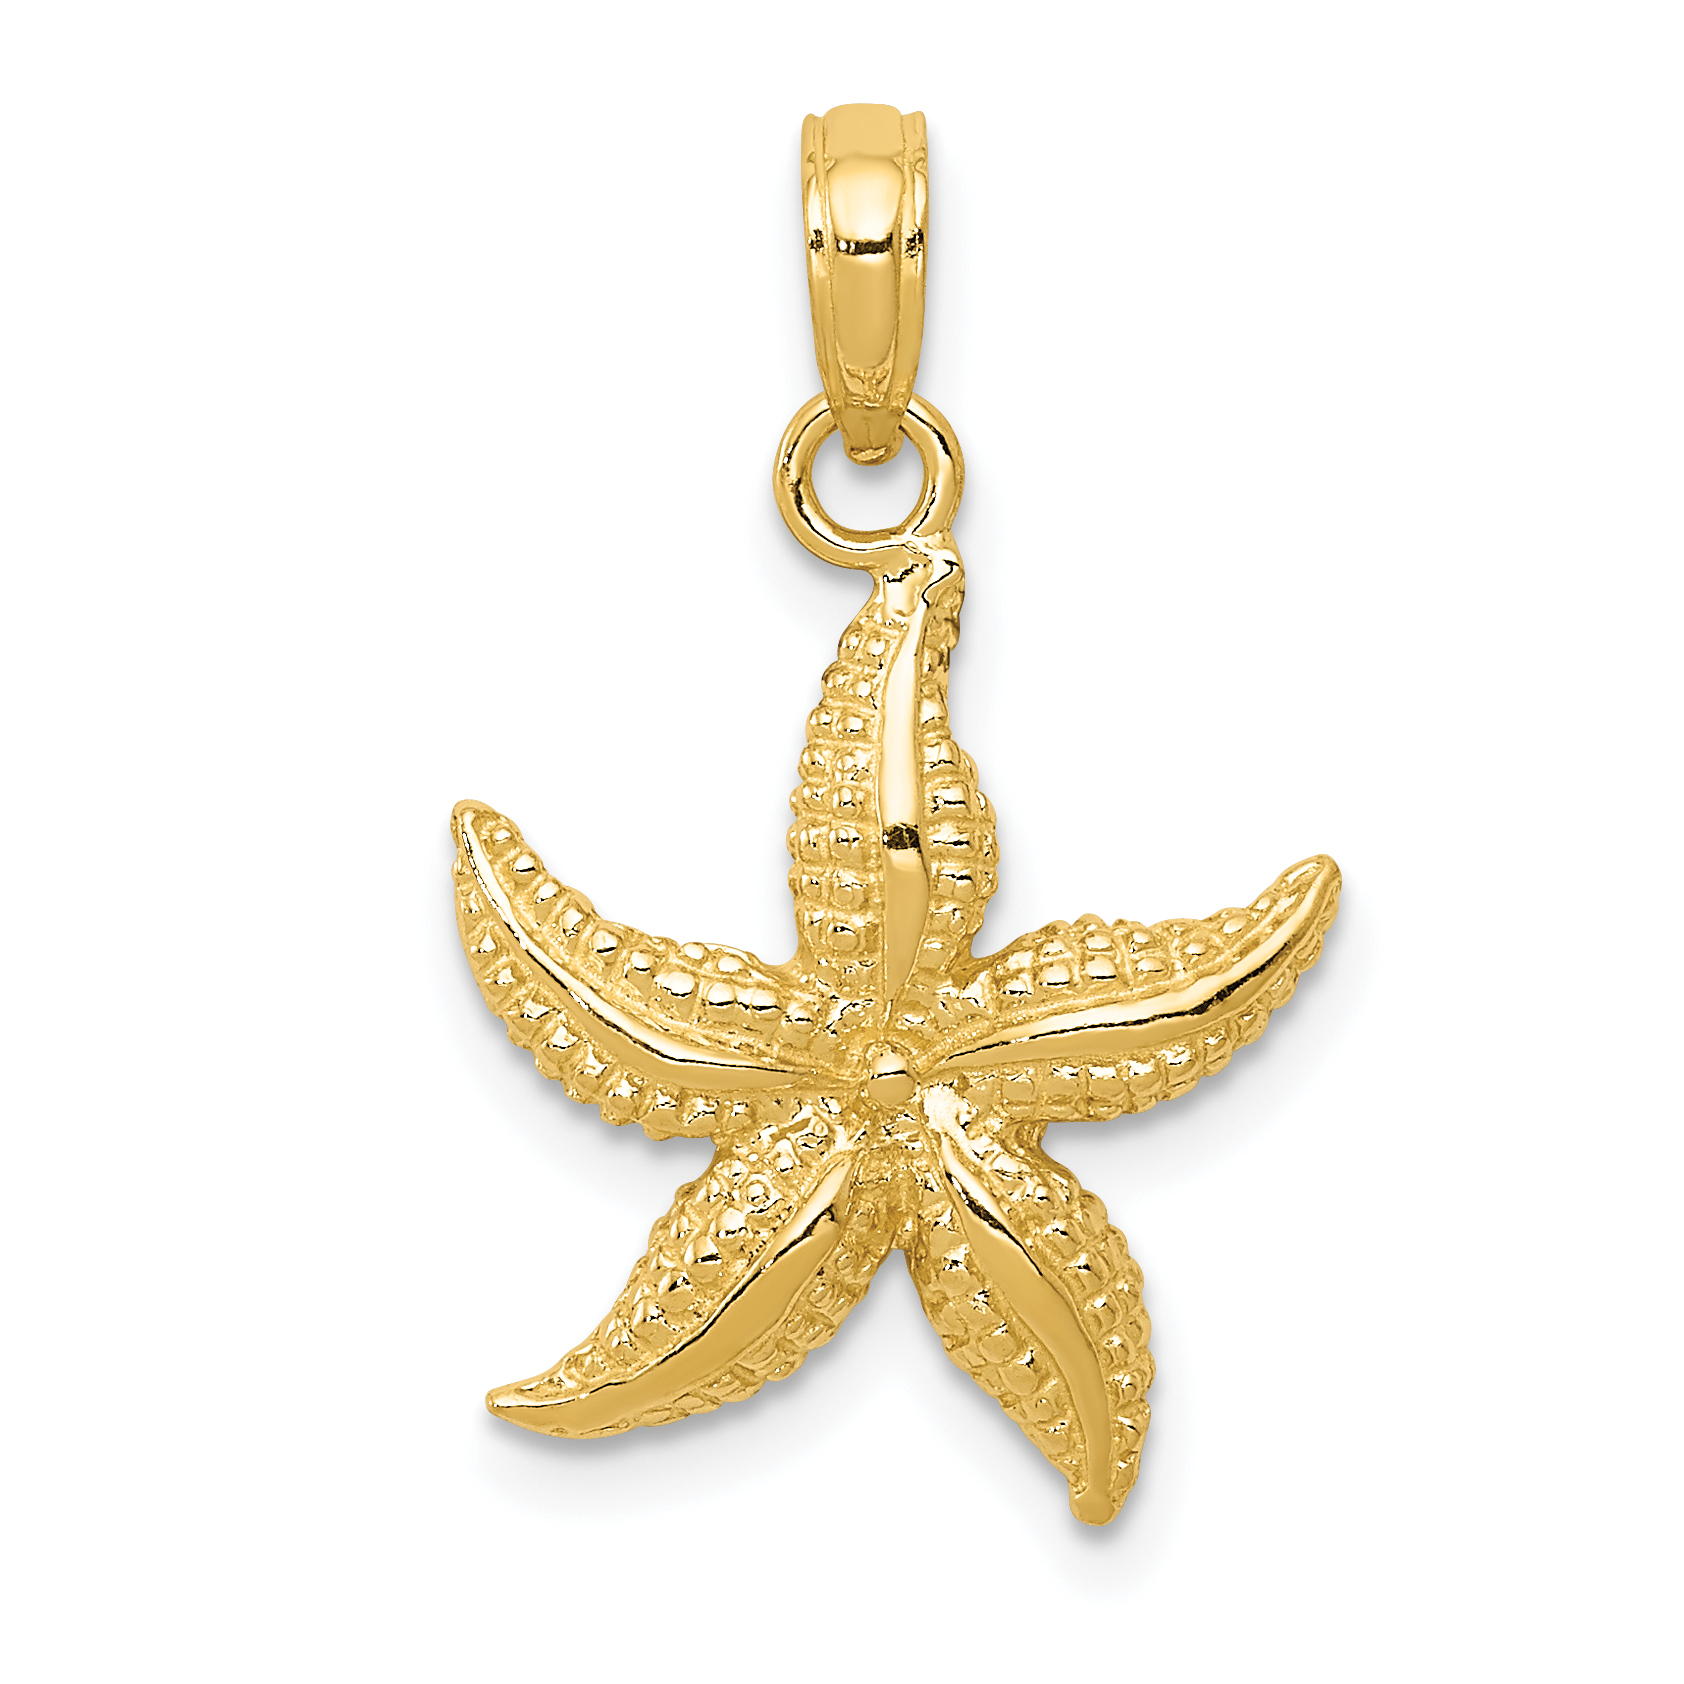 14k Yellow Gold Starfish Pendant Charm Necklace Sea Shore Shell Life Man Fine Jewelry Gift For Dad Mens For Him - image 2 of 2